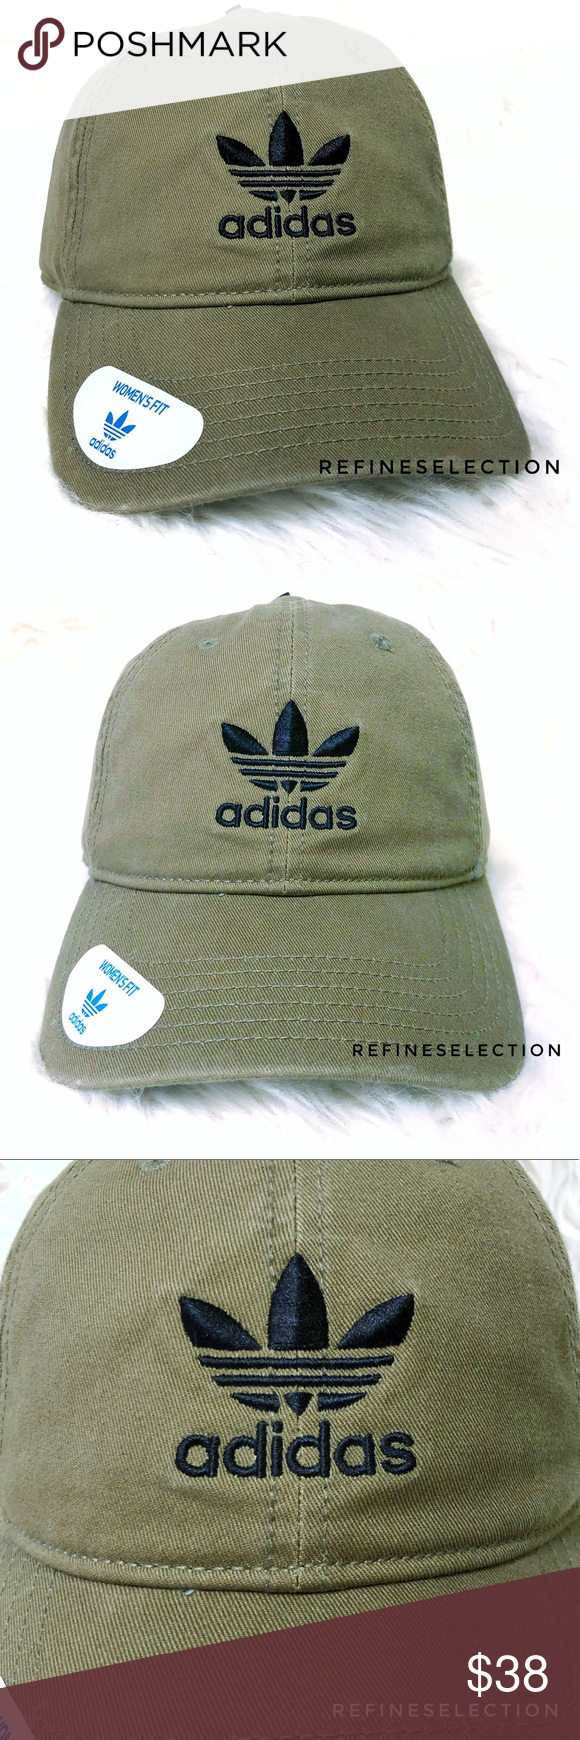 20a038ac7c4 adidas Olive Cargo Green Trefoil Strapback Dad Hat Brand new with tags